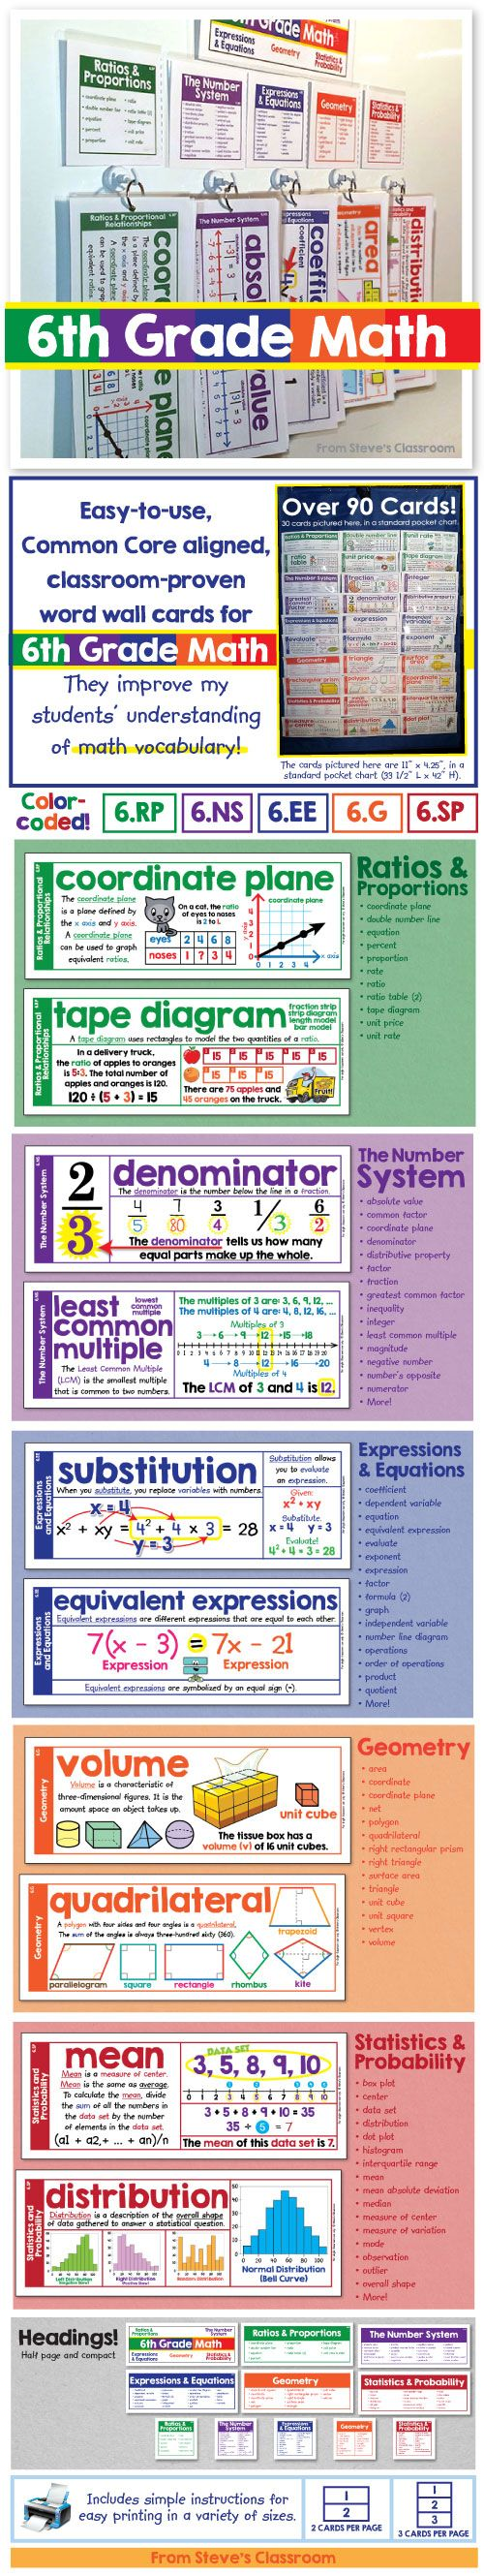 I made this set of 6th Grade math vocabulary word wall cards. It fits in a wall space the size of a poster! Over ninety terms for sixth grade math, all in one compact space on my classroom wall. The definitions, examples, and illustrations help students understand key vocabulary for Ratios and Proportions, The Number System, Expressions and Equations, Geometry, and Statistics and Probability. ~